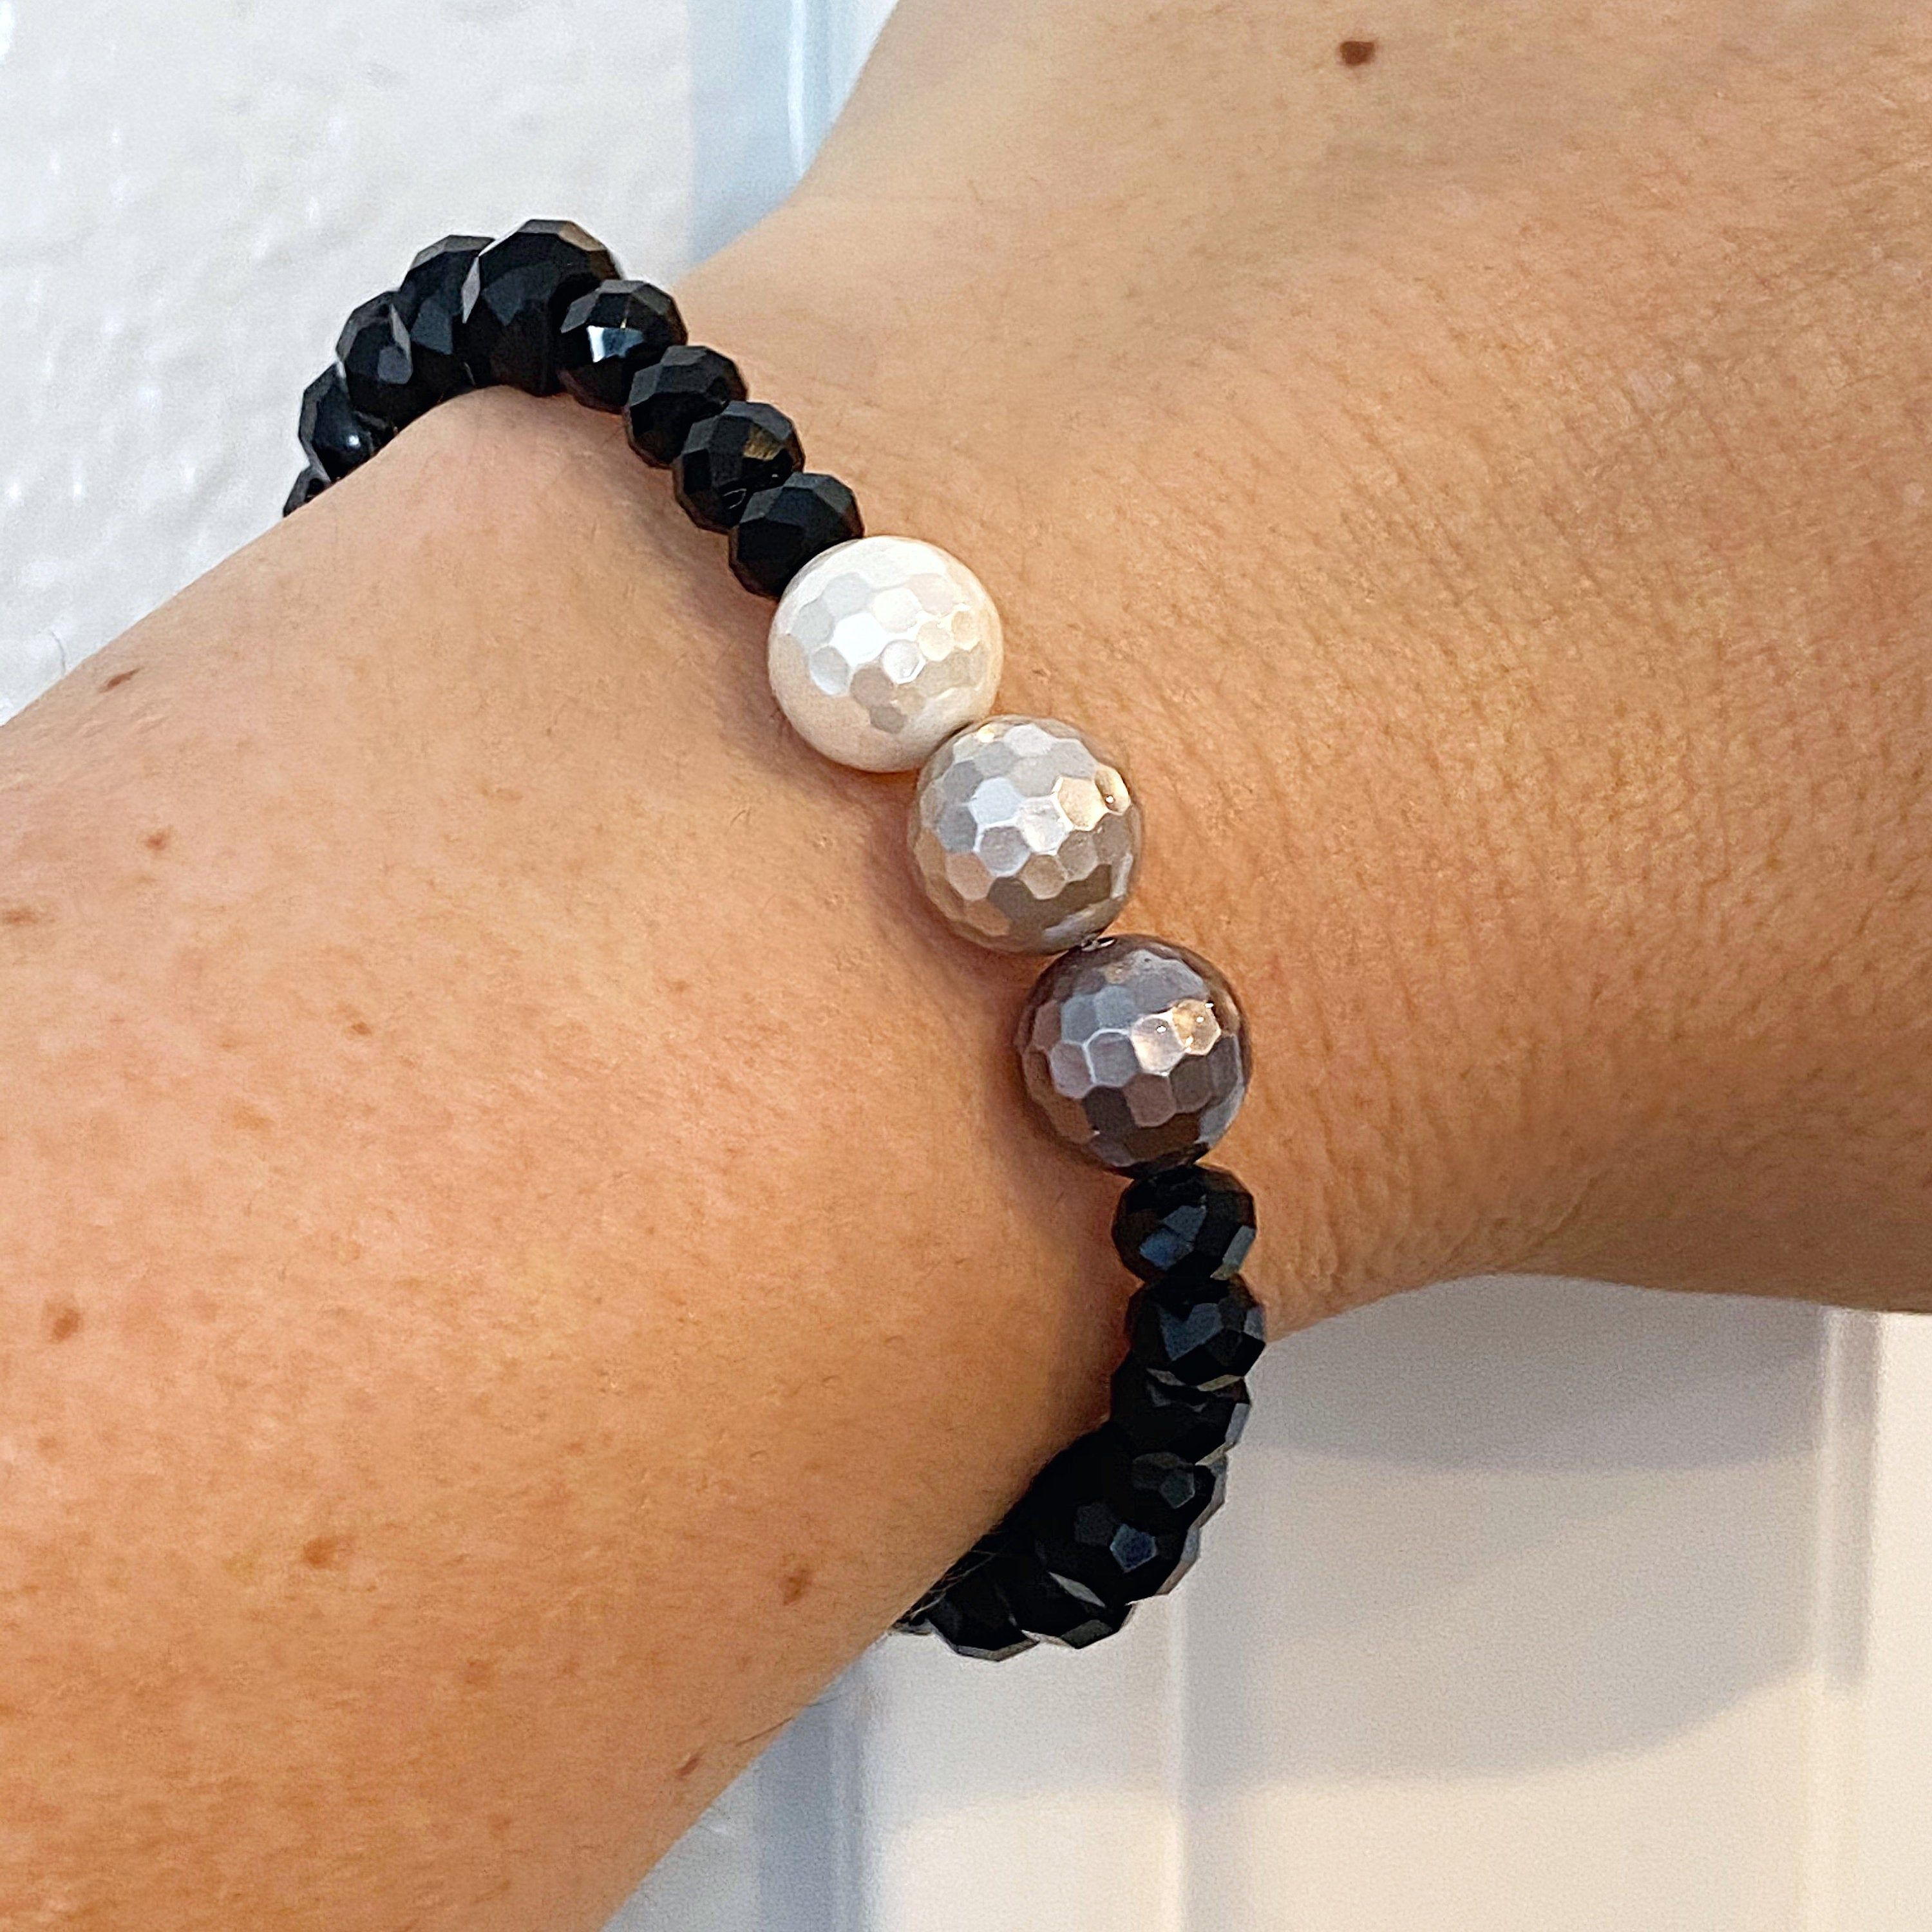 Black /& White Bracelet Handcrafted Beaded Bracelet Czech Glass,Mother of Pearl,Ladies Jewelry Gift Ideas For Her,Stretchy Black Bracelet